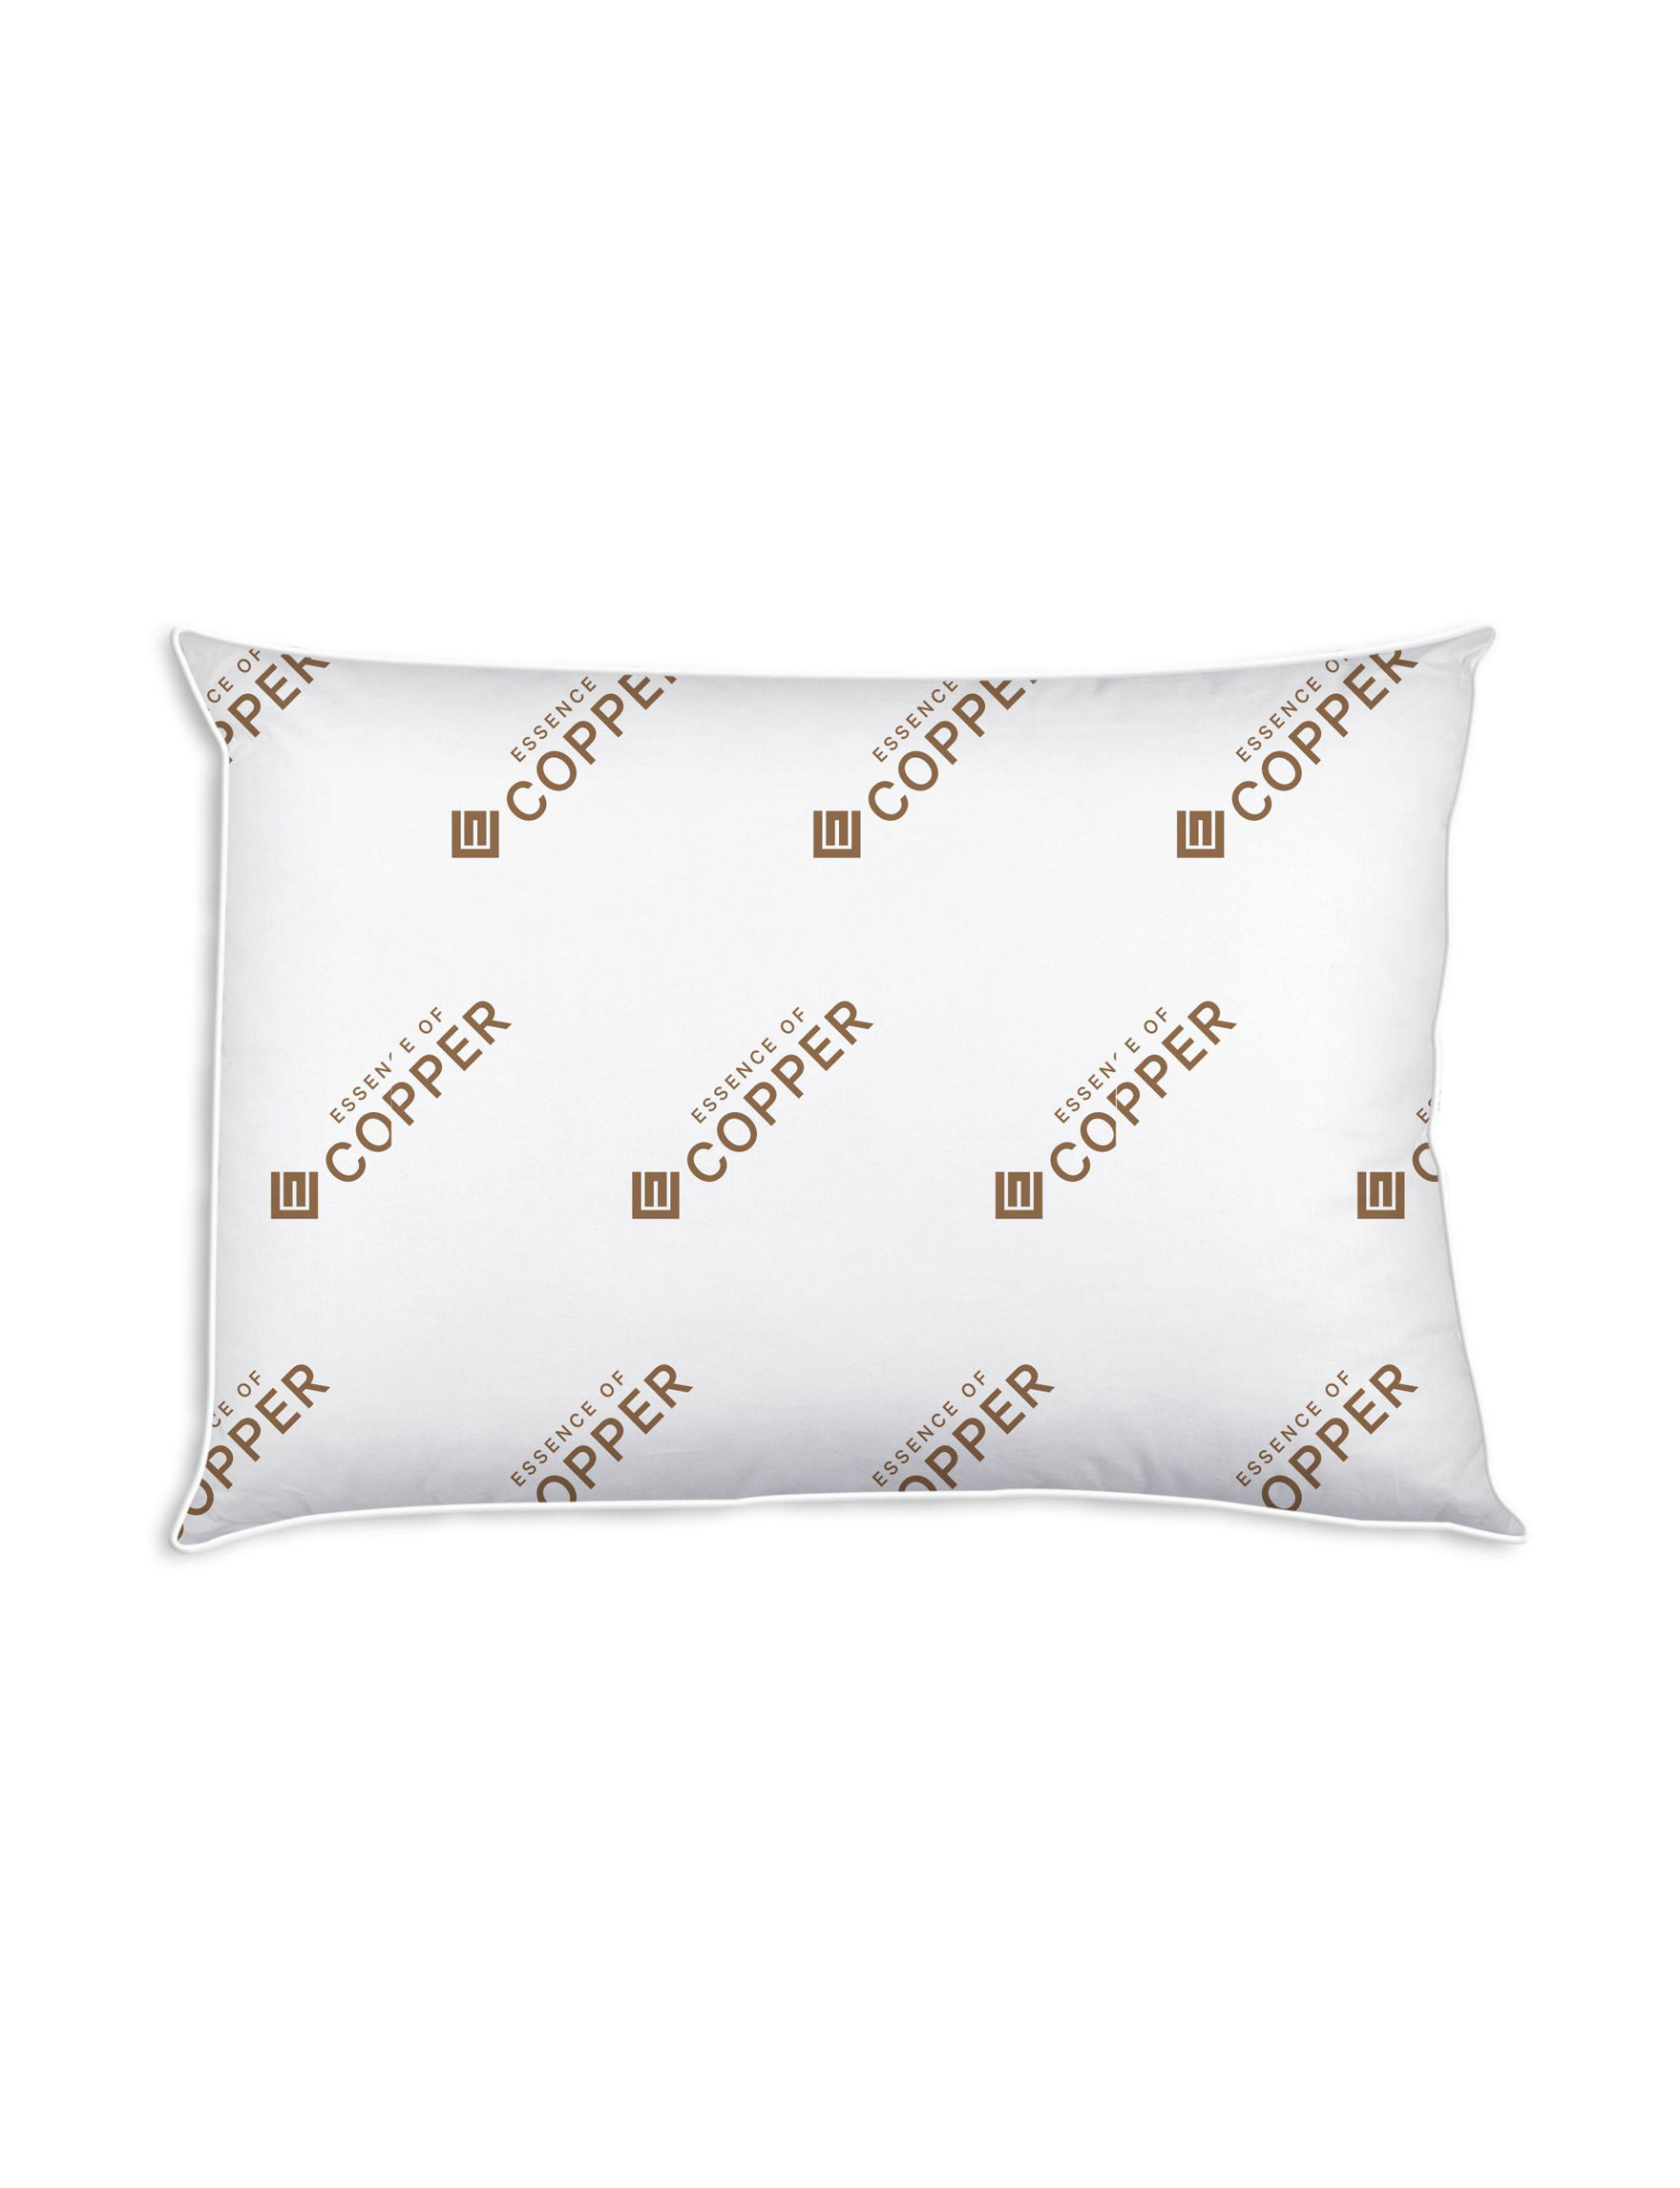 Essence of Copper White Bed Pillows